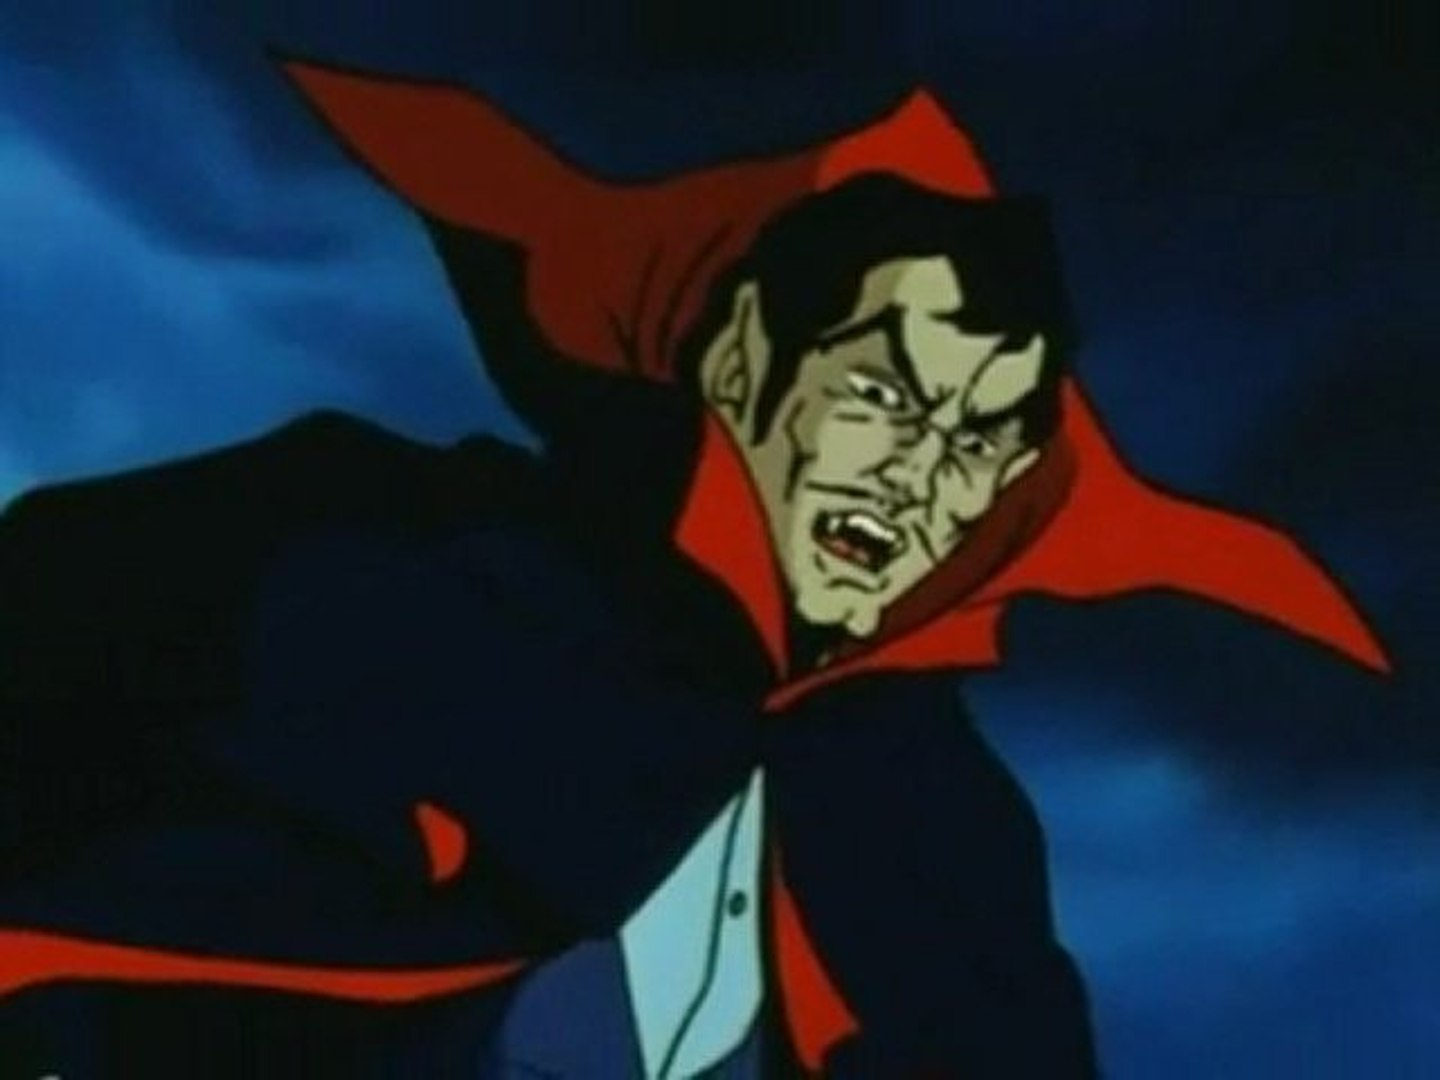 The anime version of Cunt Dracula in Dracula (1980)